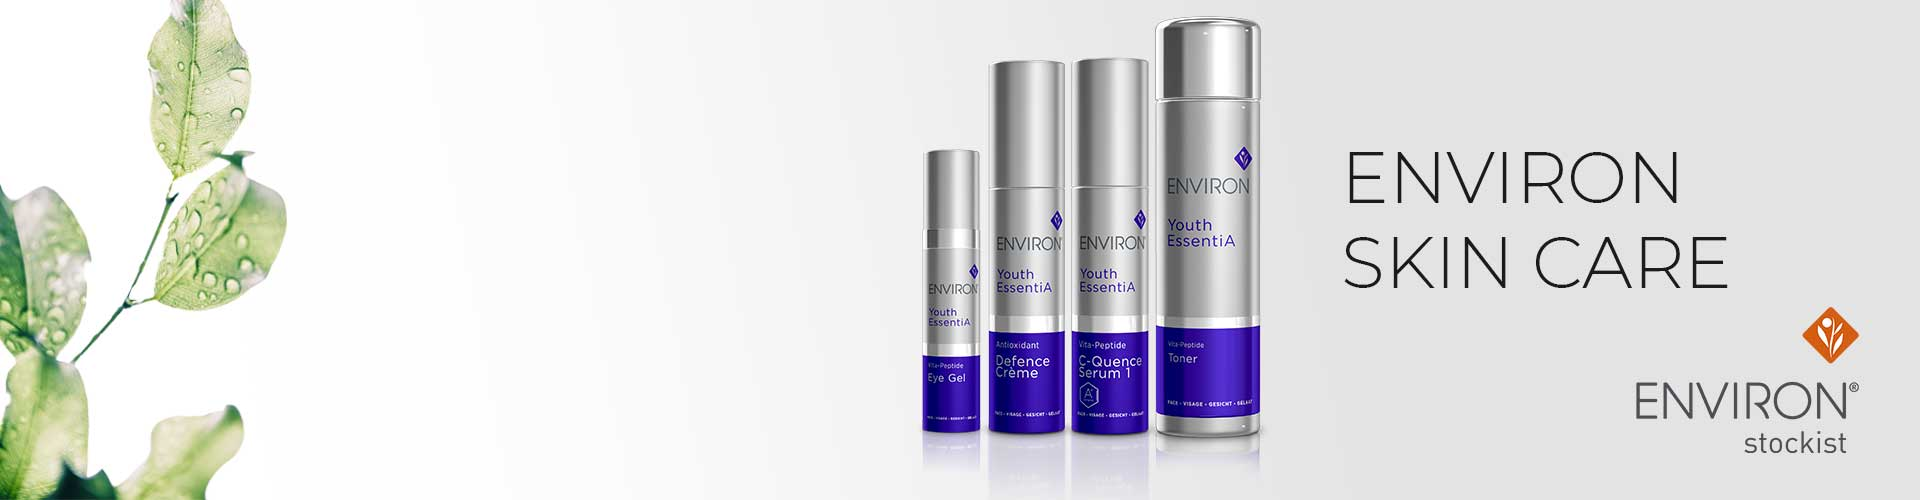 Environ Skin Care Product Banner